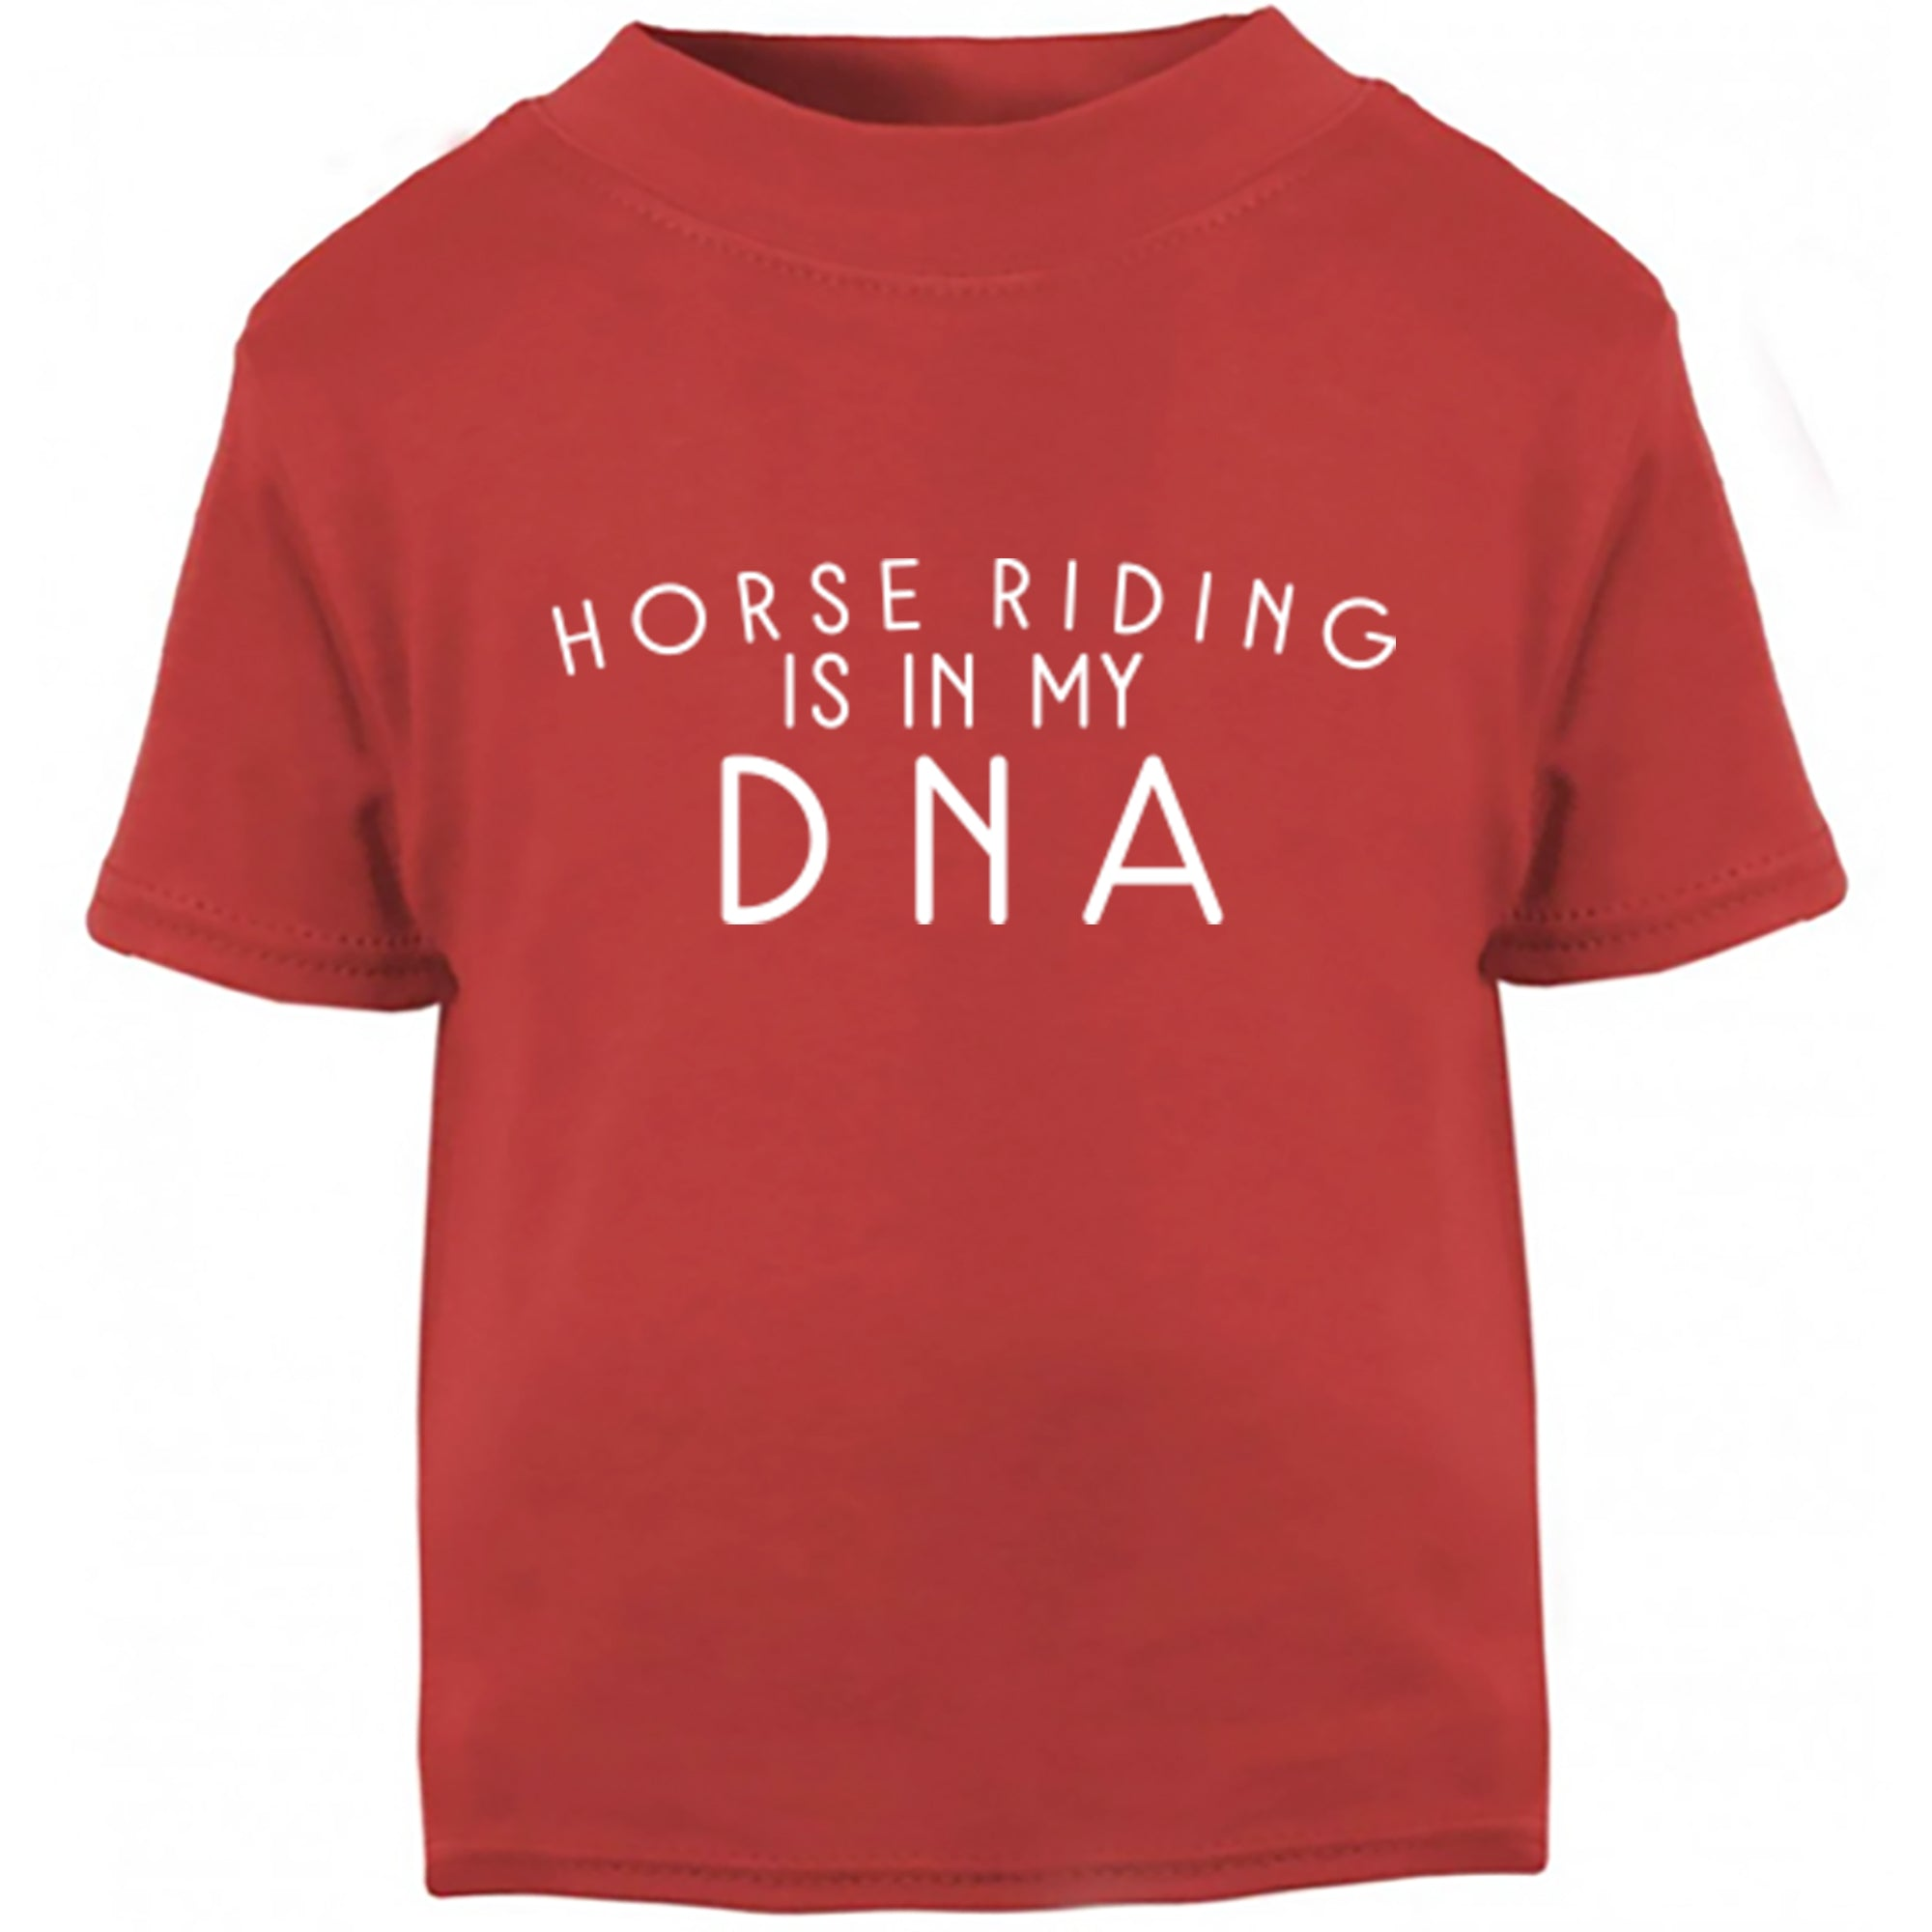 Horse Riding Is In My DNA Childrens Ages 3/4-12/14 Unisex Fit T-Shirt S0699